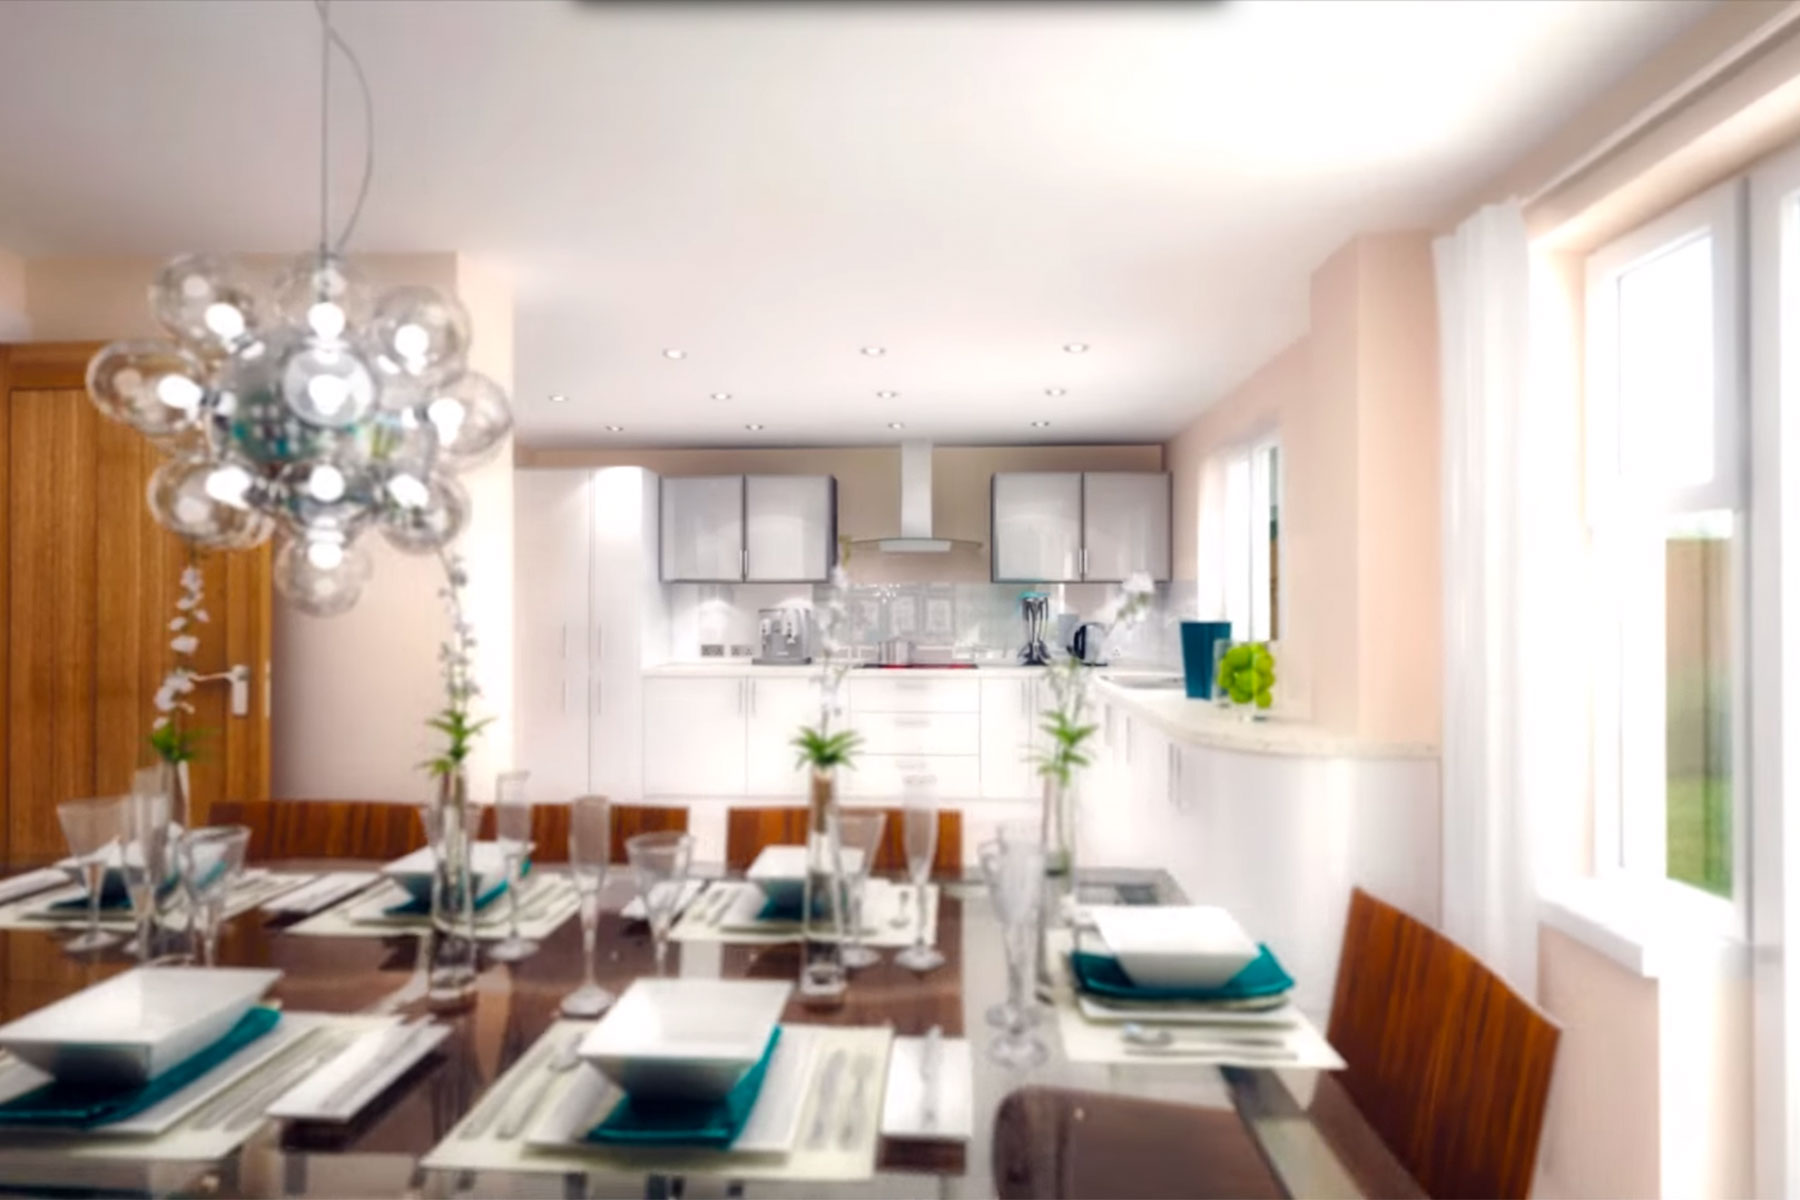 Stirling_Kitchen_Dining_1_web